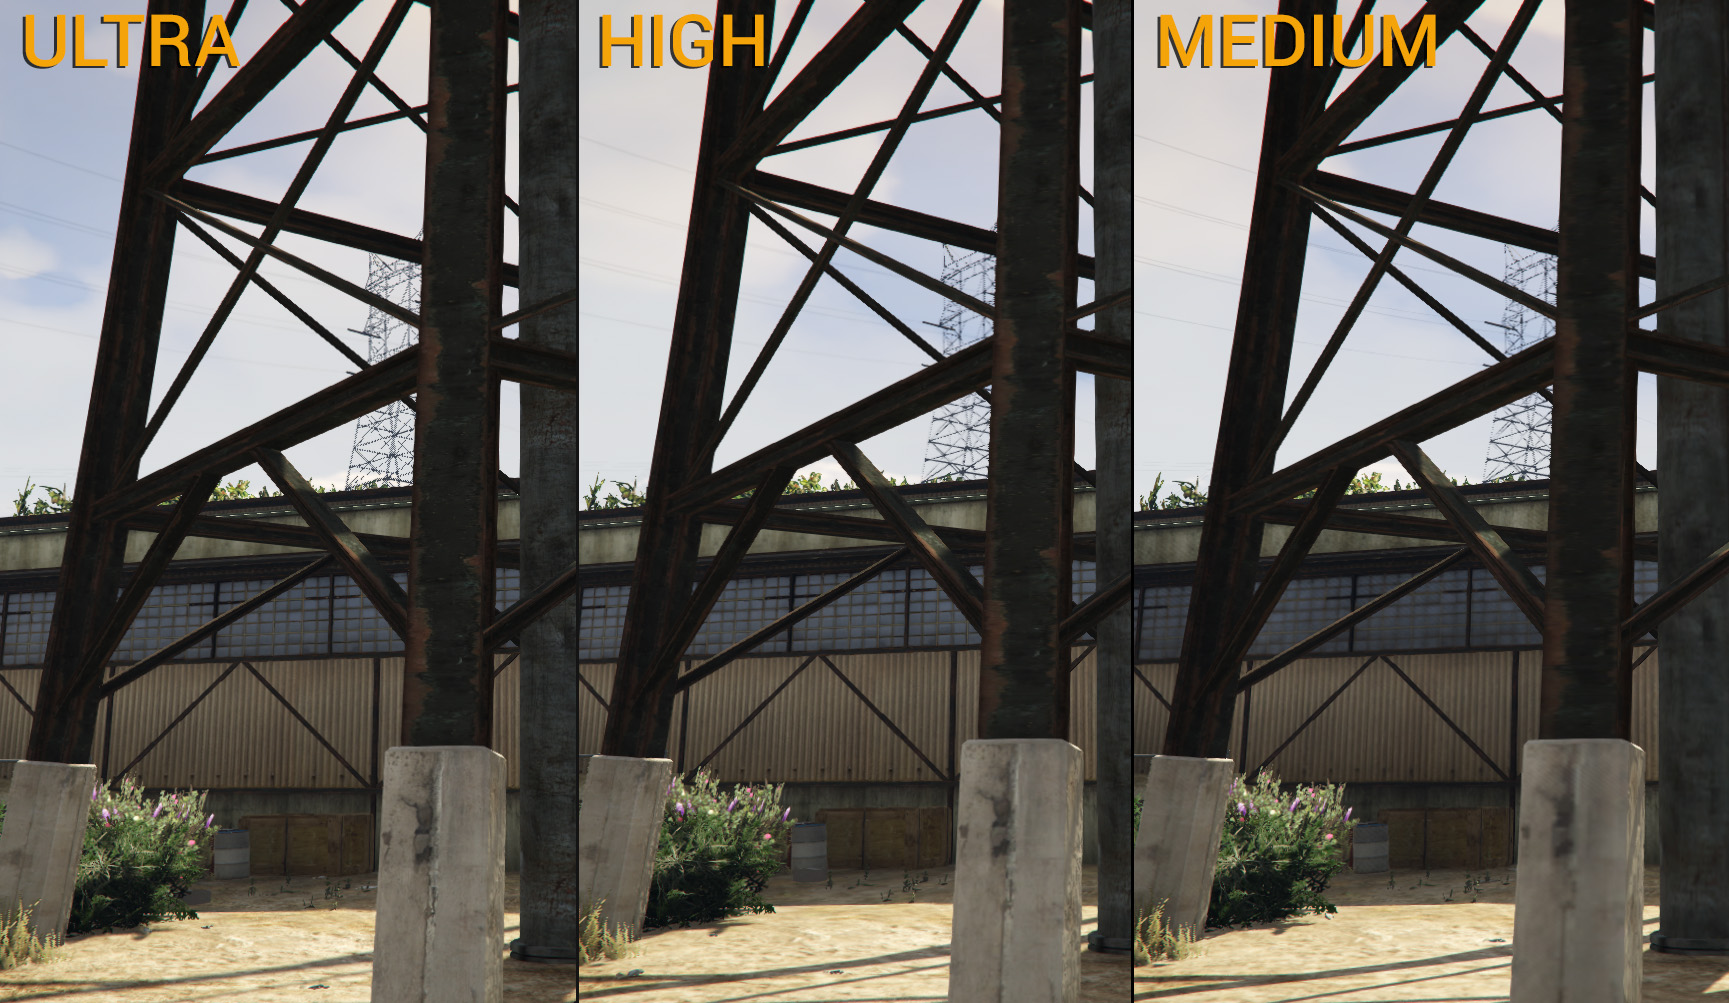 gtav_ultra-vs-high-vs-medium